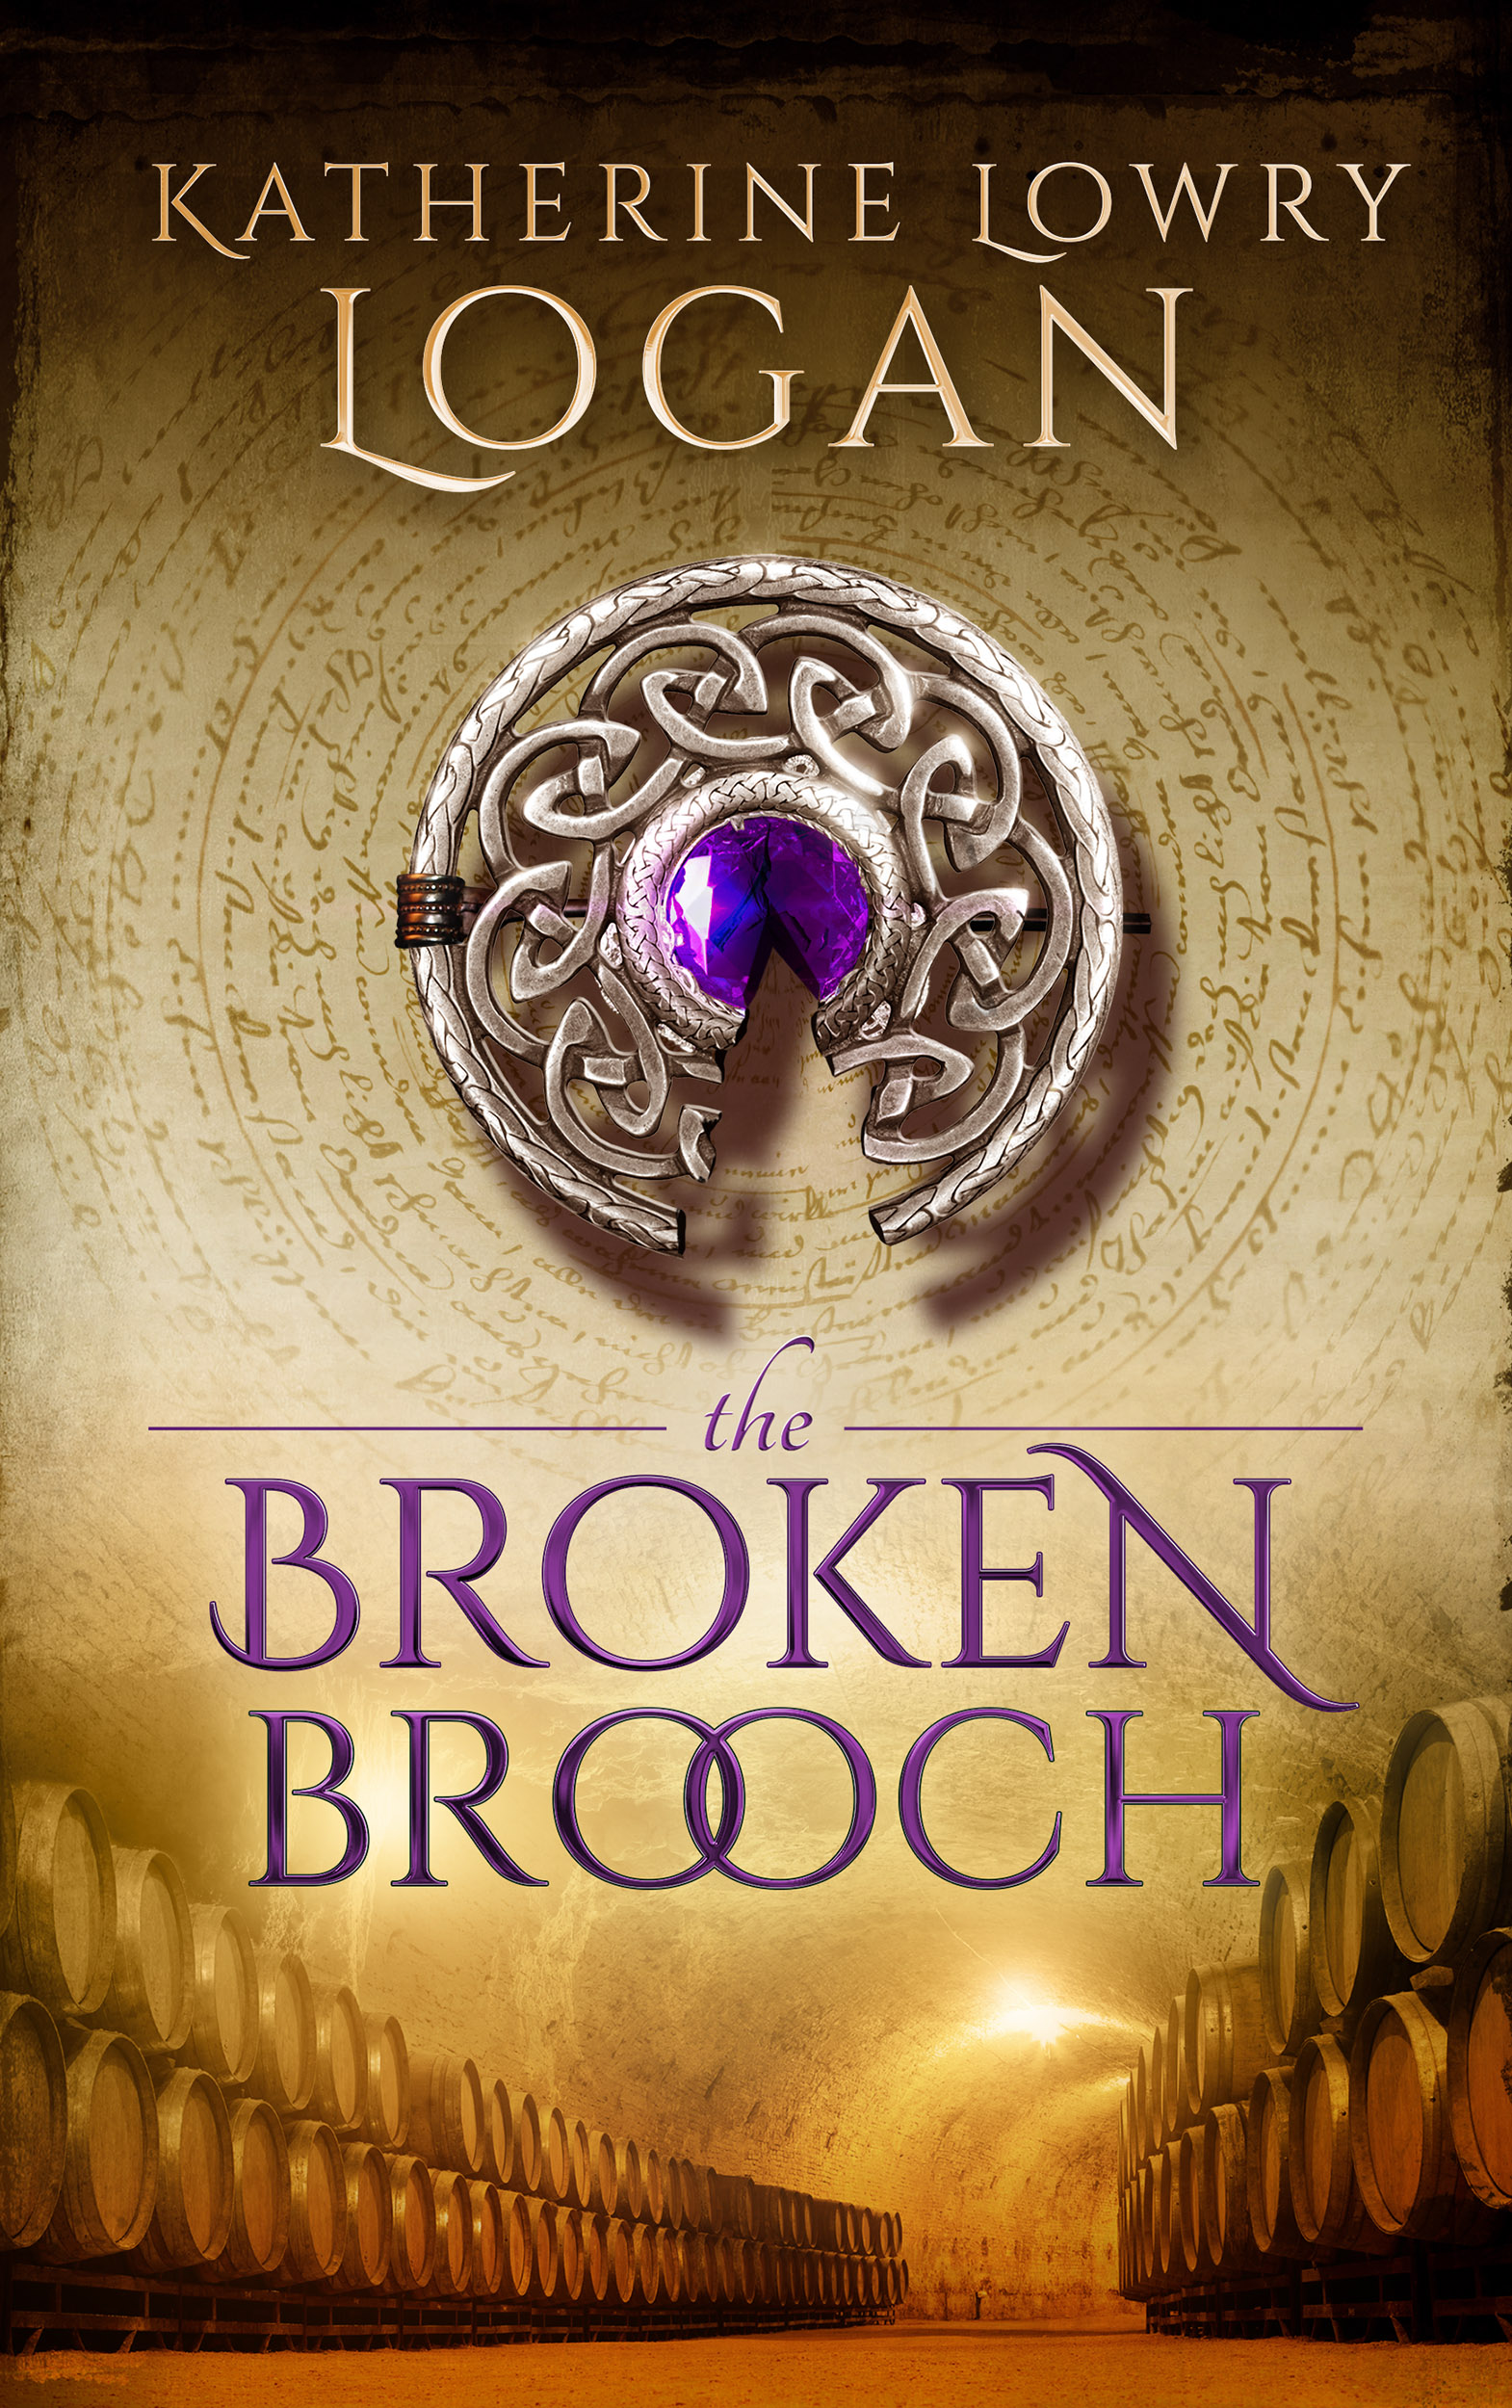 The Broken Brooch - Ebook Small